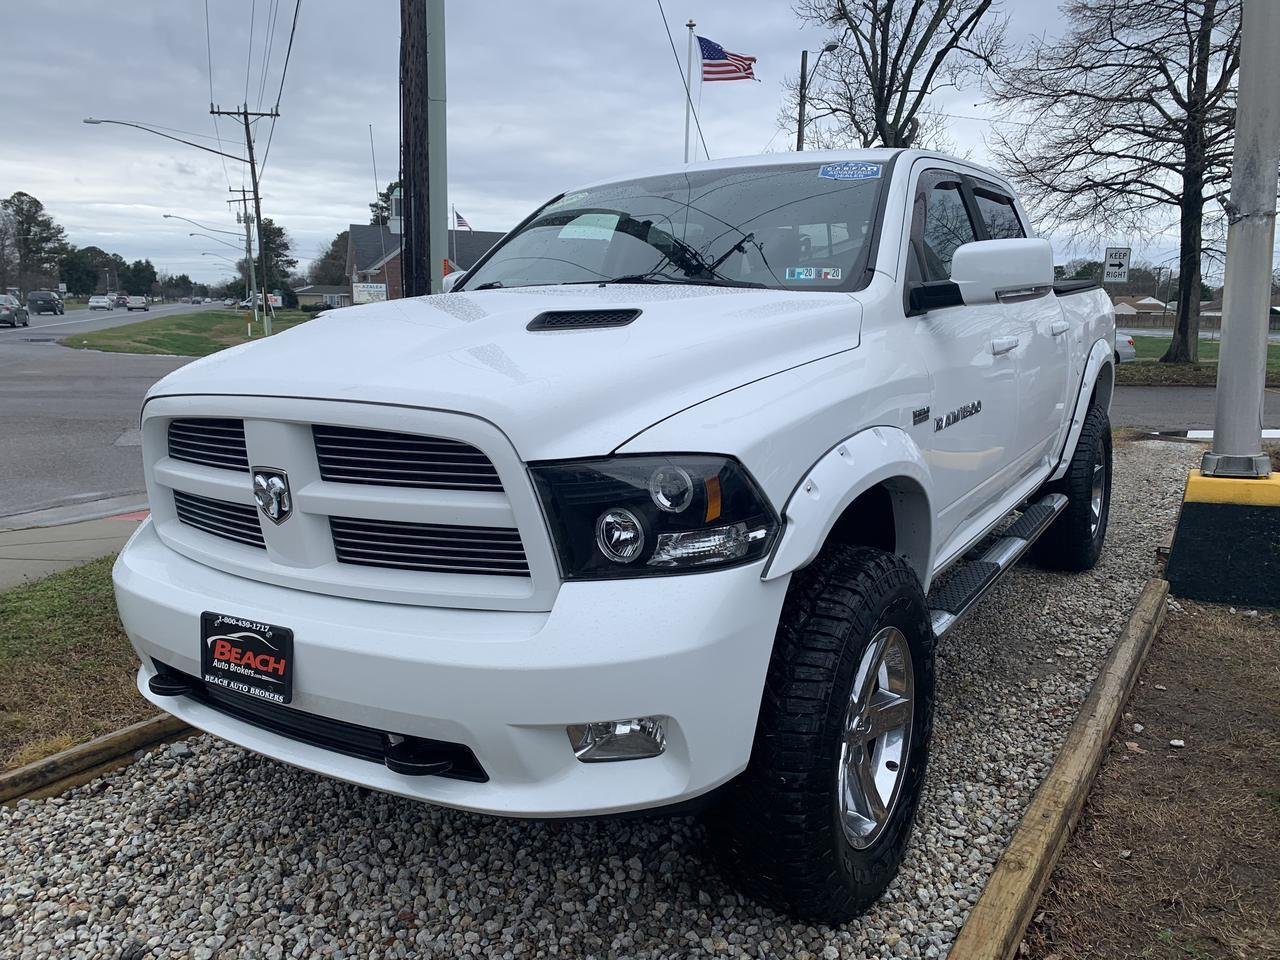 2011 DODGE RAM SPORT CREW CAB 4X4, WARRANTY, LIFTED, LEATHER, NAV, SIRIUS RADIO, RUNNING BOARDS, TOW PKG! Norfolk VA